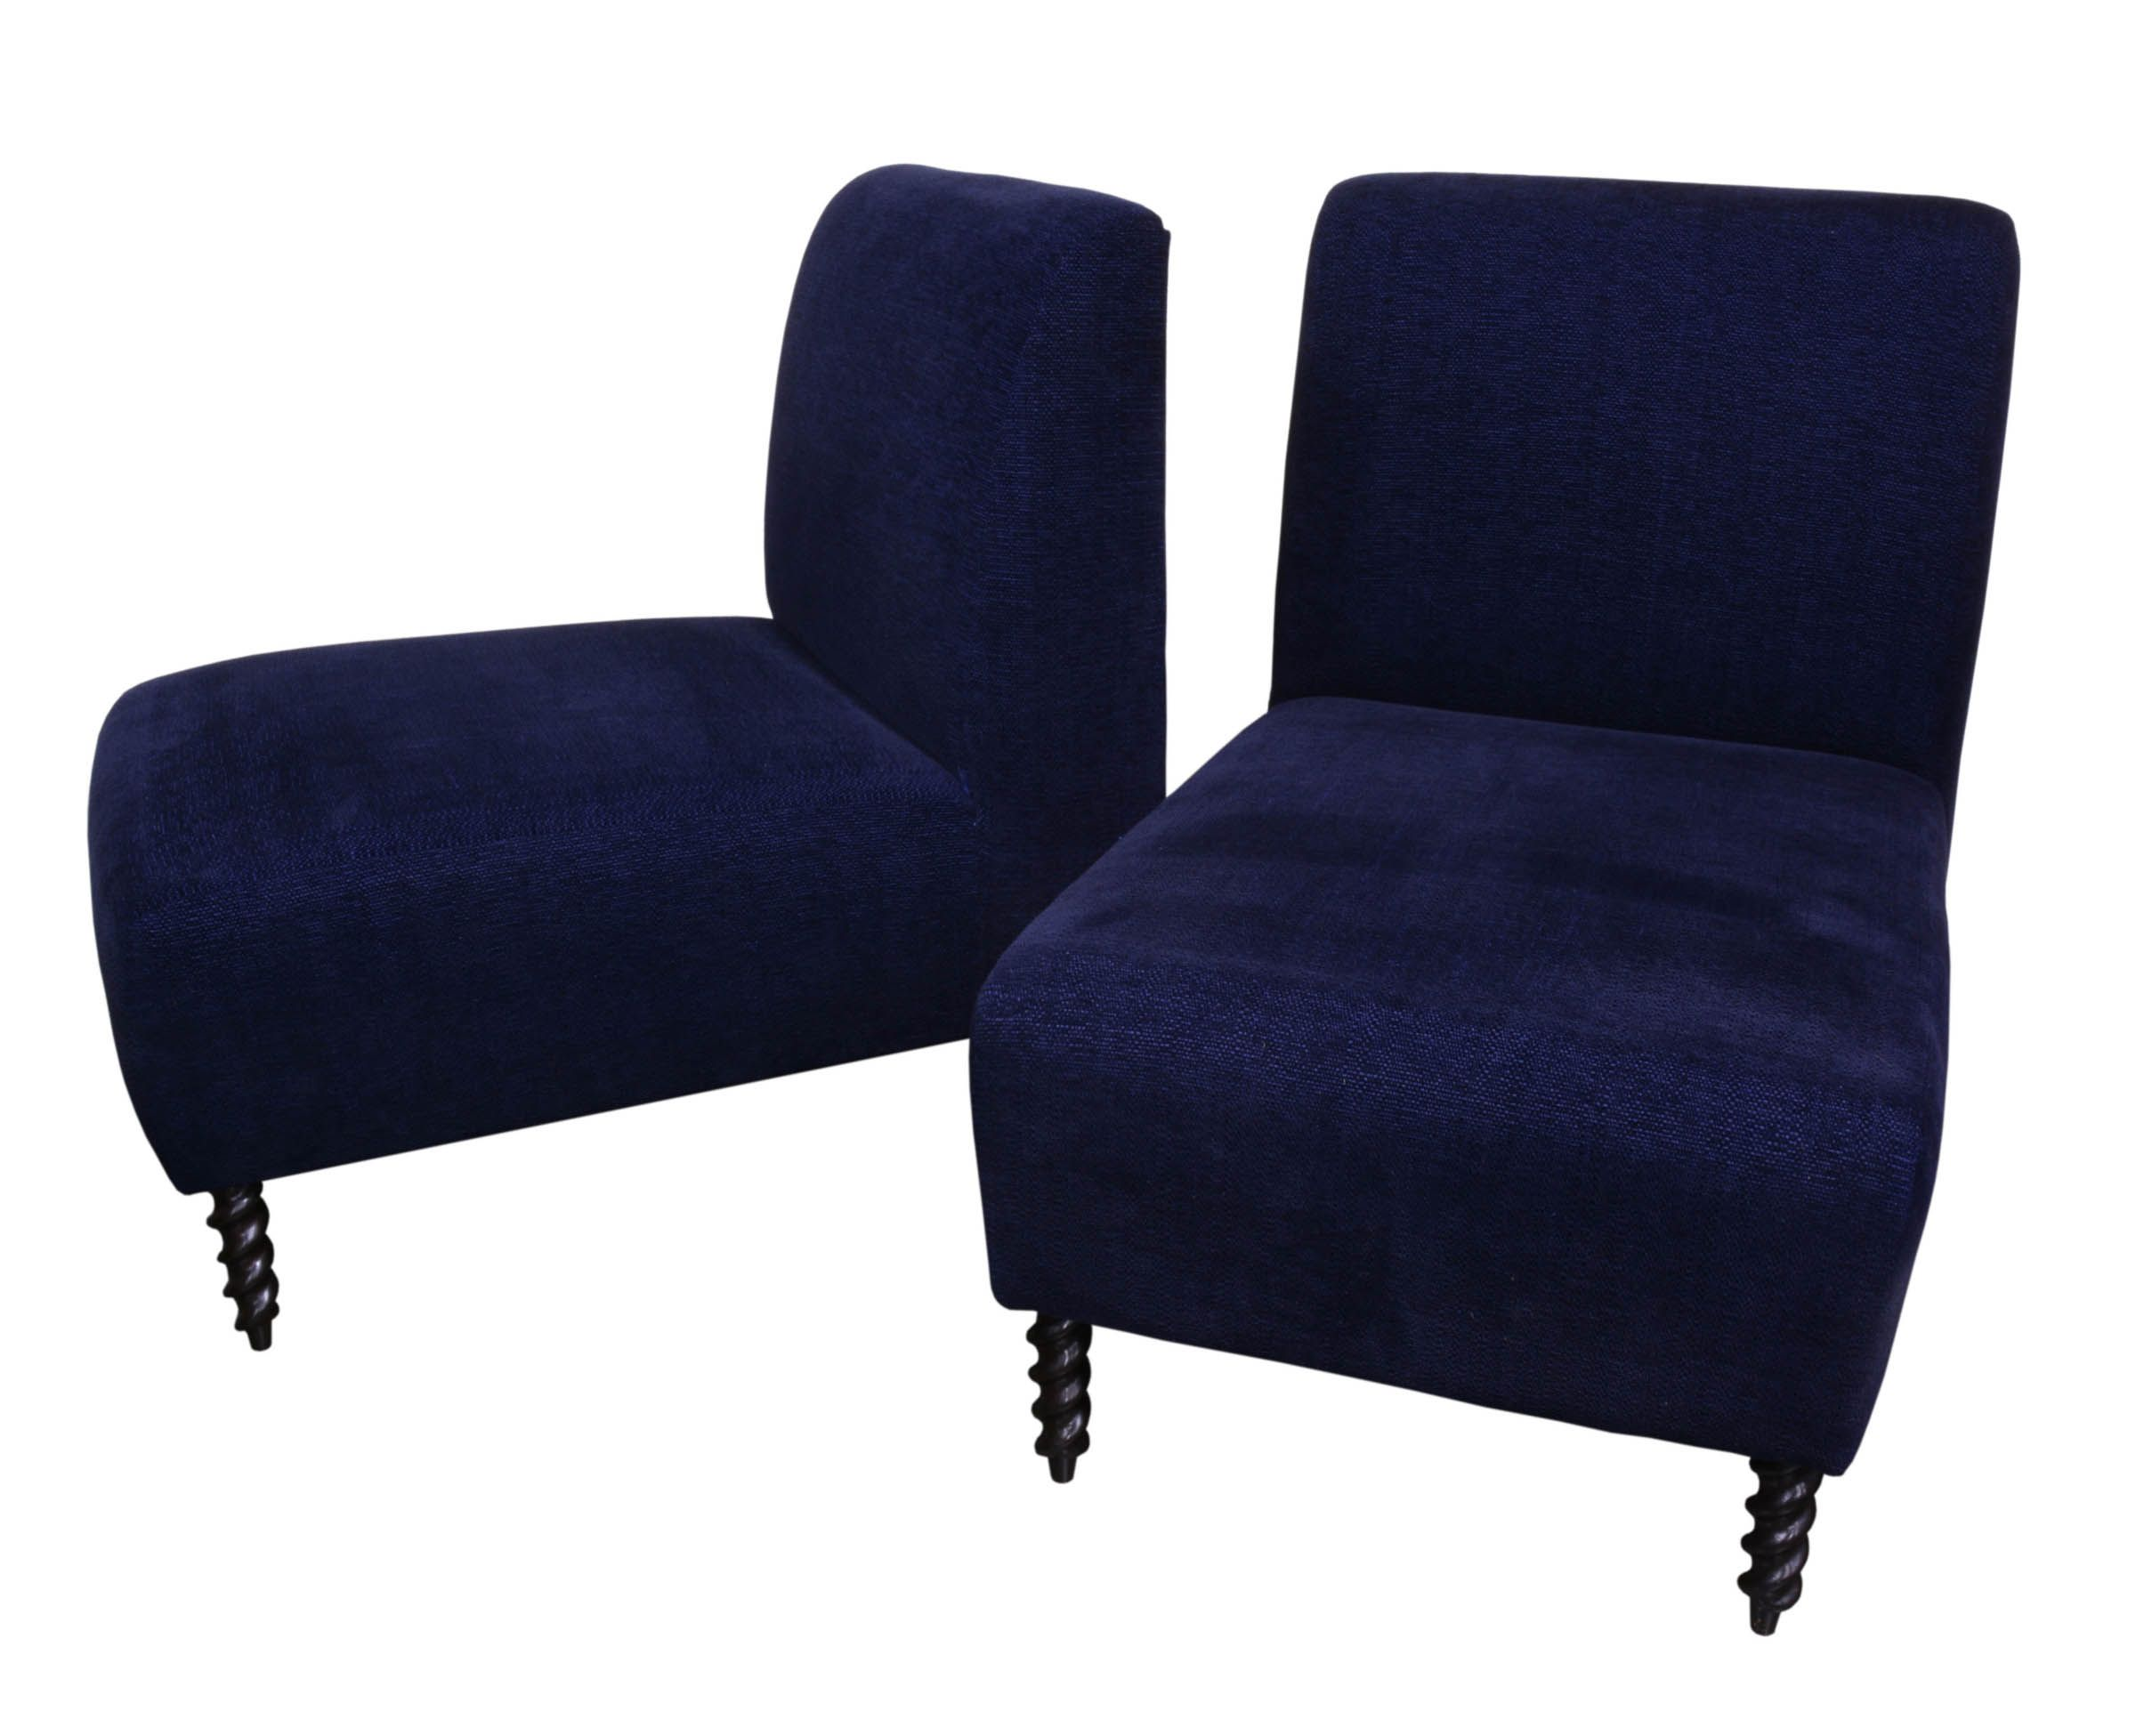 navy blue velvet slipper chair swing interior a pair chairish